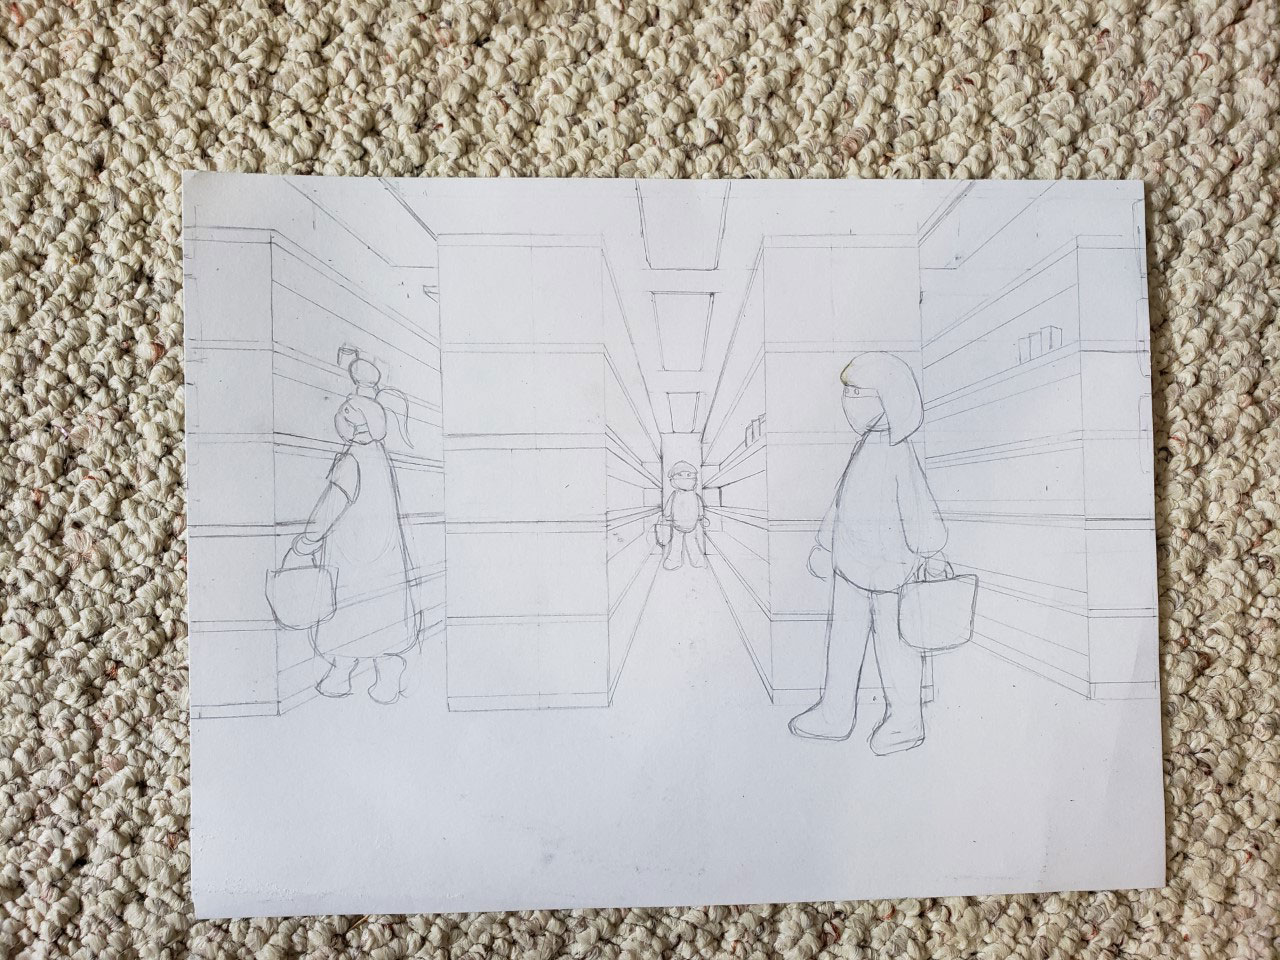 Pencil sketch of people shopping in a store and wearing masks.